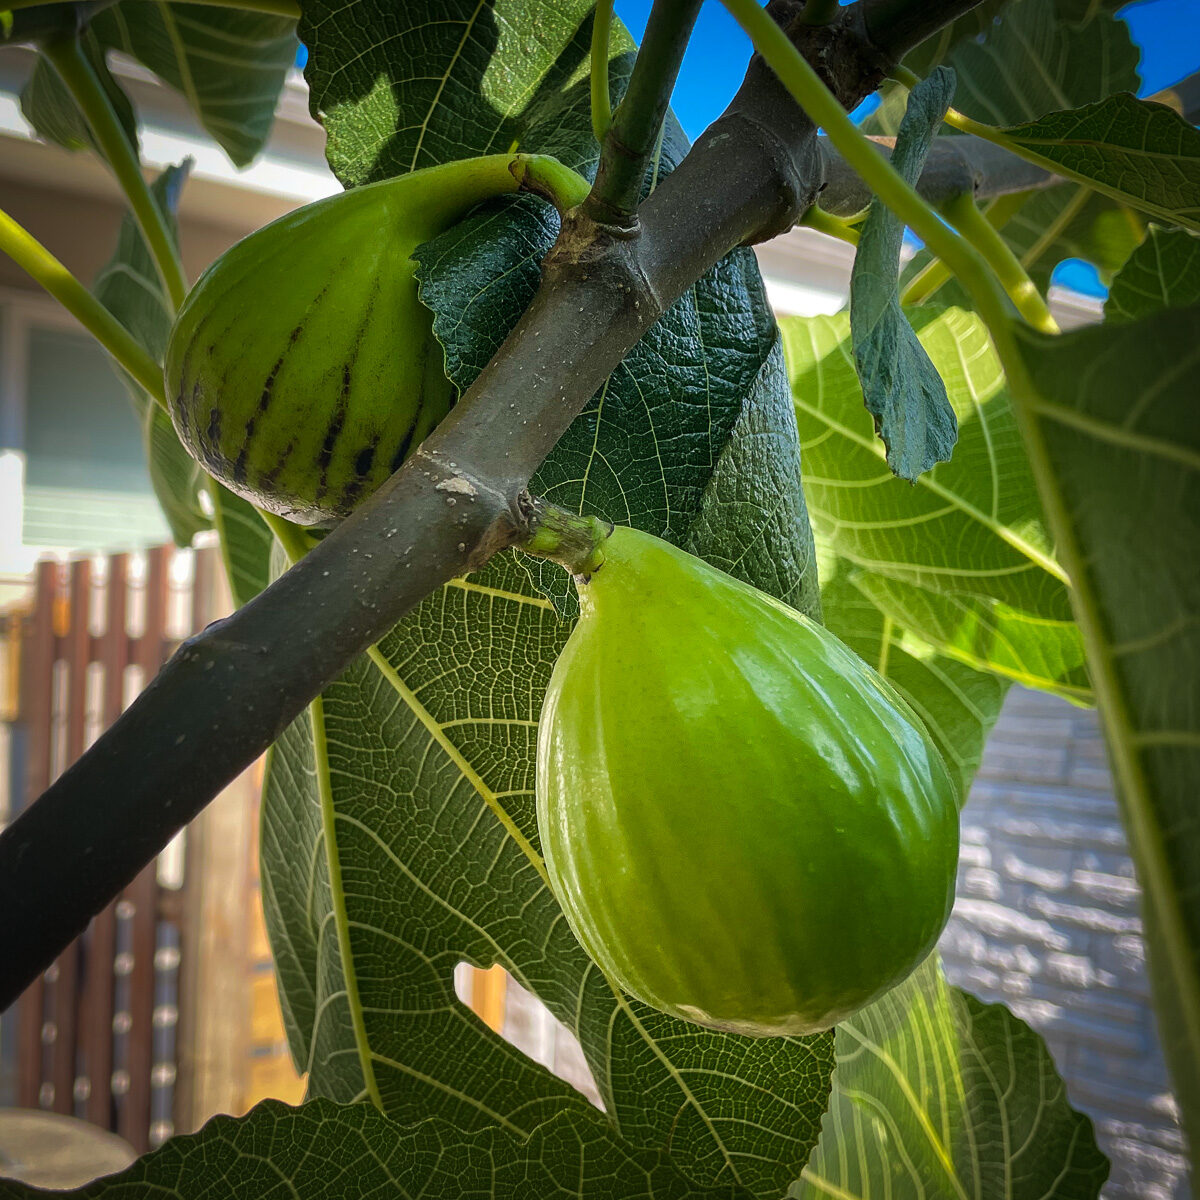 Ripe figs still on the tree branch ready to be picked